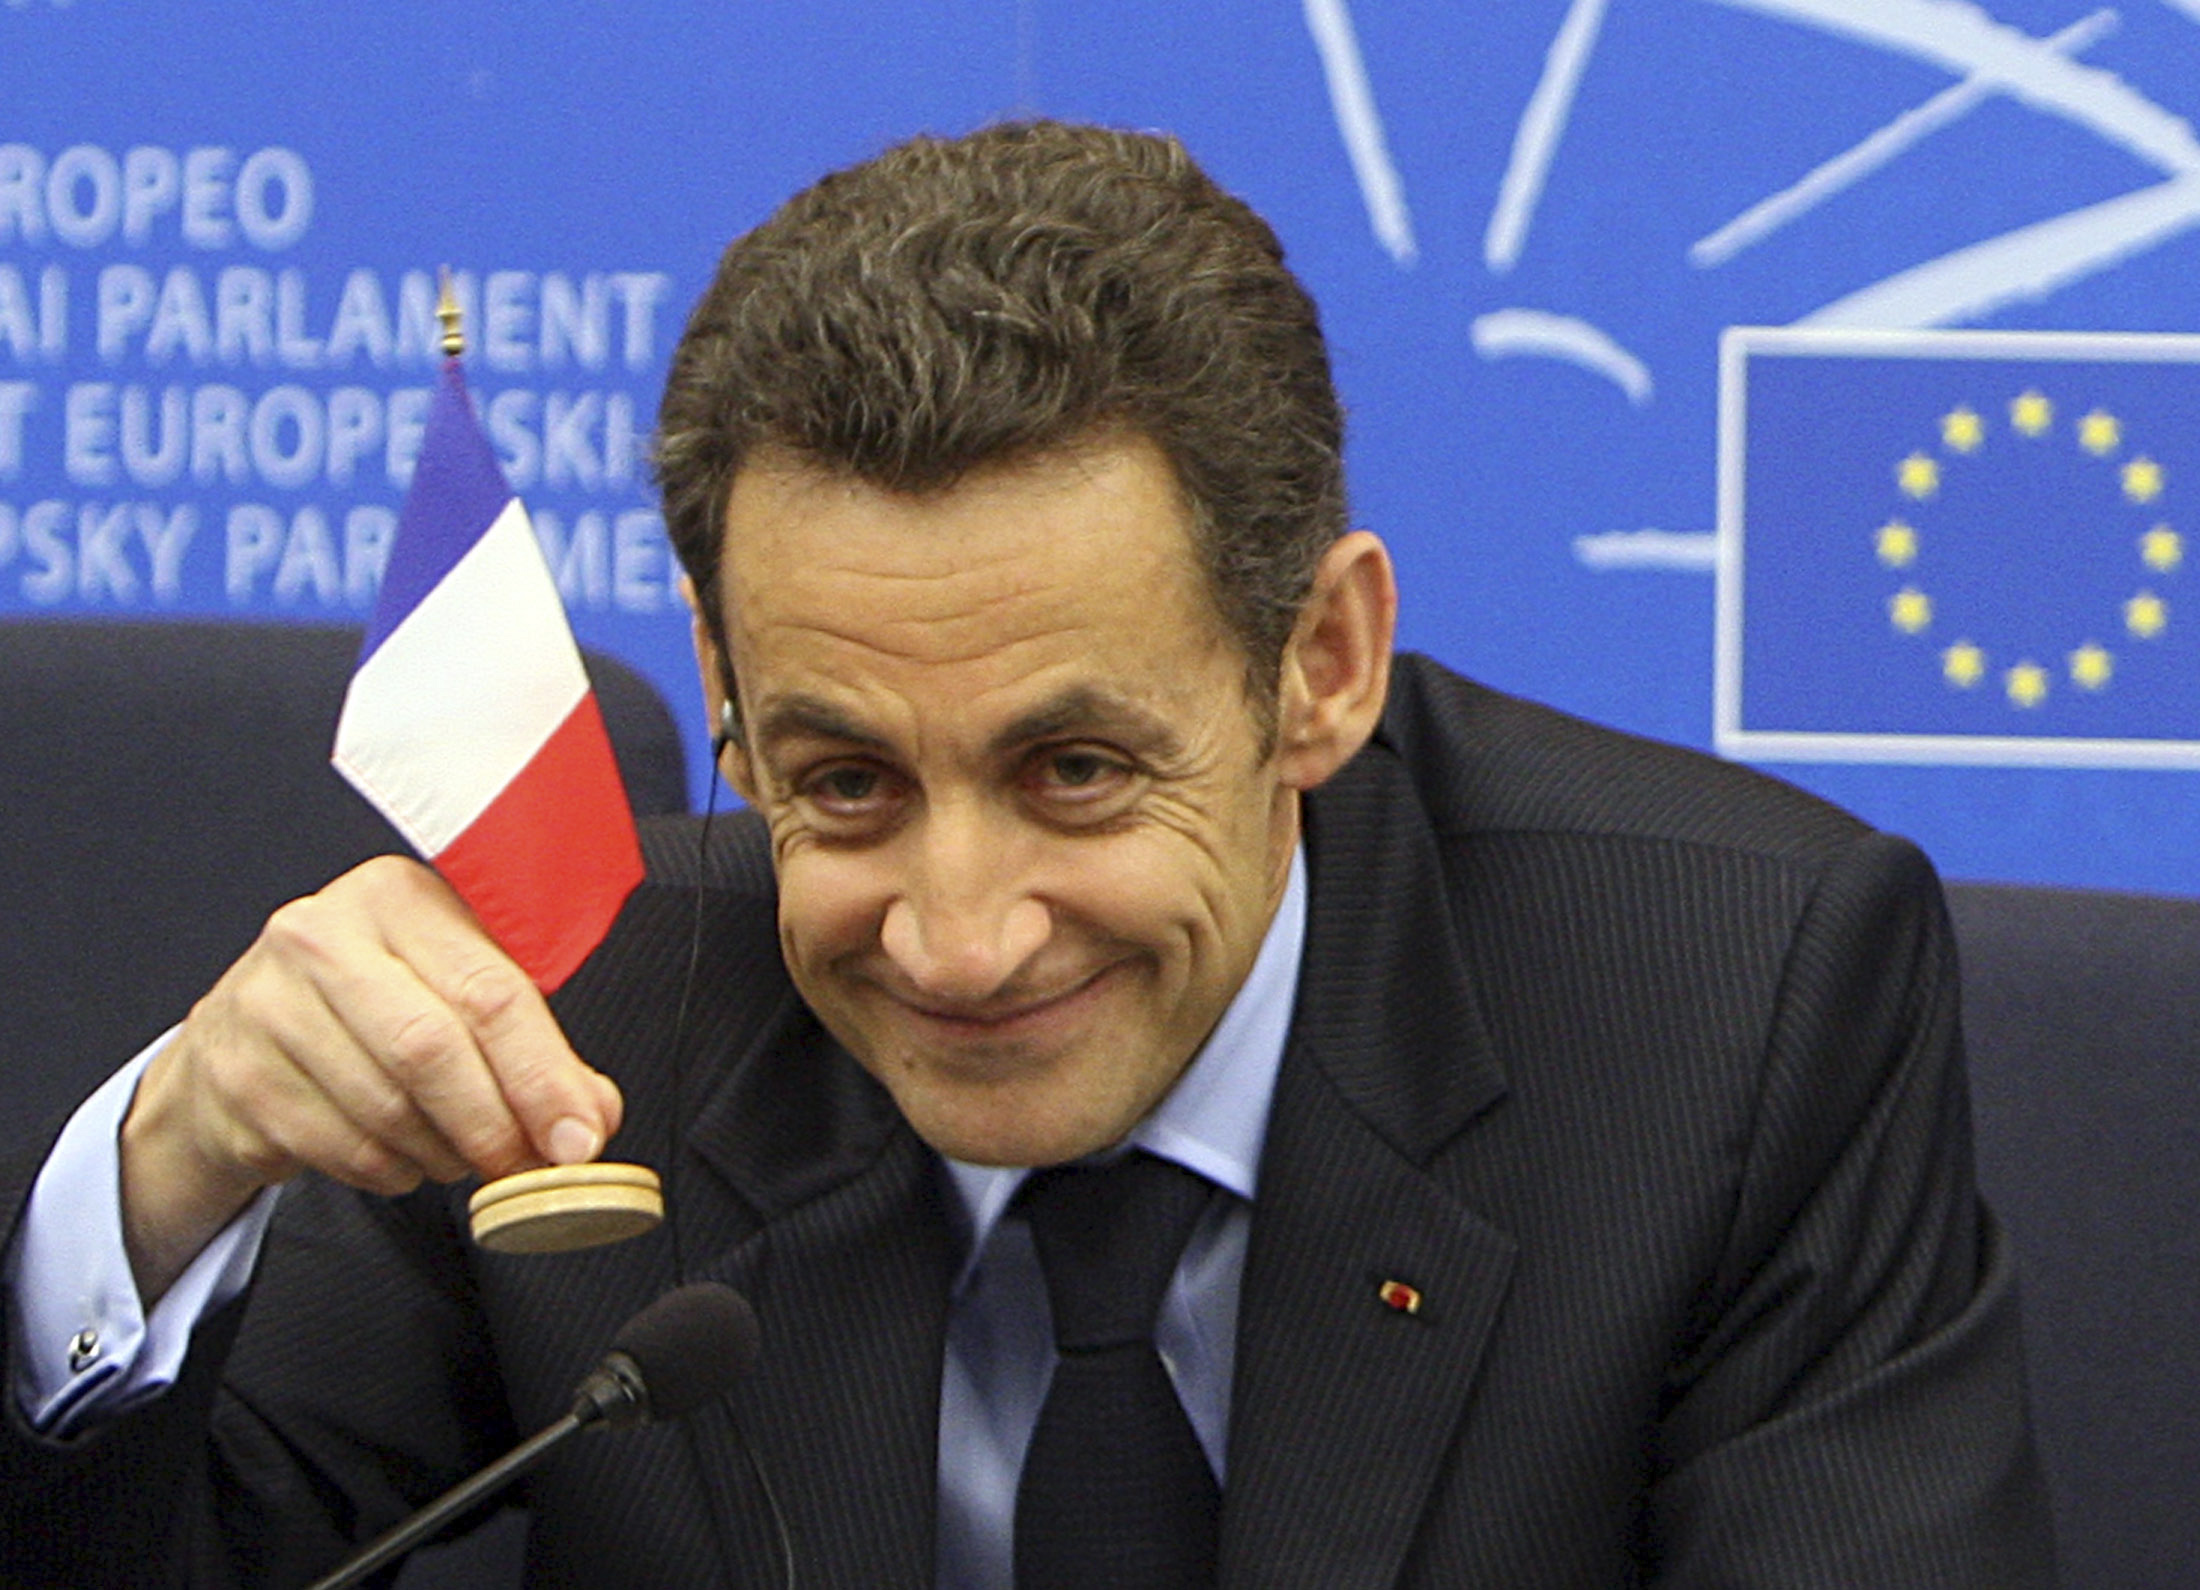 French President Nicolas Sarkozy holds a French flag during a press conference Tuesday Dec 16, 2008 at the European Parliament in Strasbourg, eastern France, after he made final appearance at European Parliament as his presidency of the European Union comes to an end. (AP Photo/Christian Lutz)